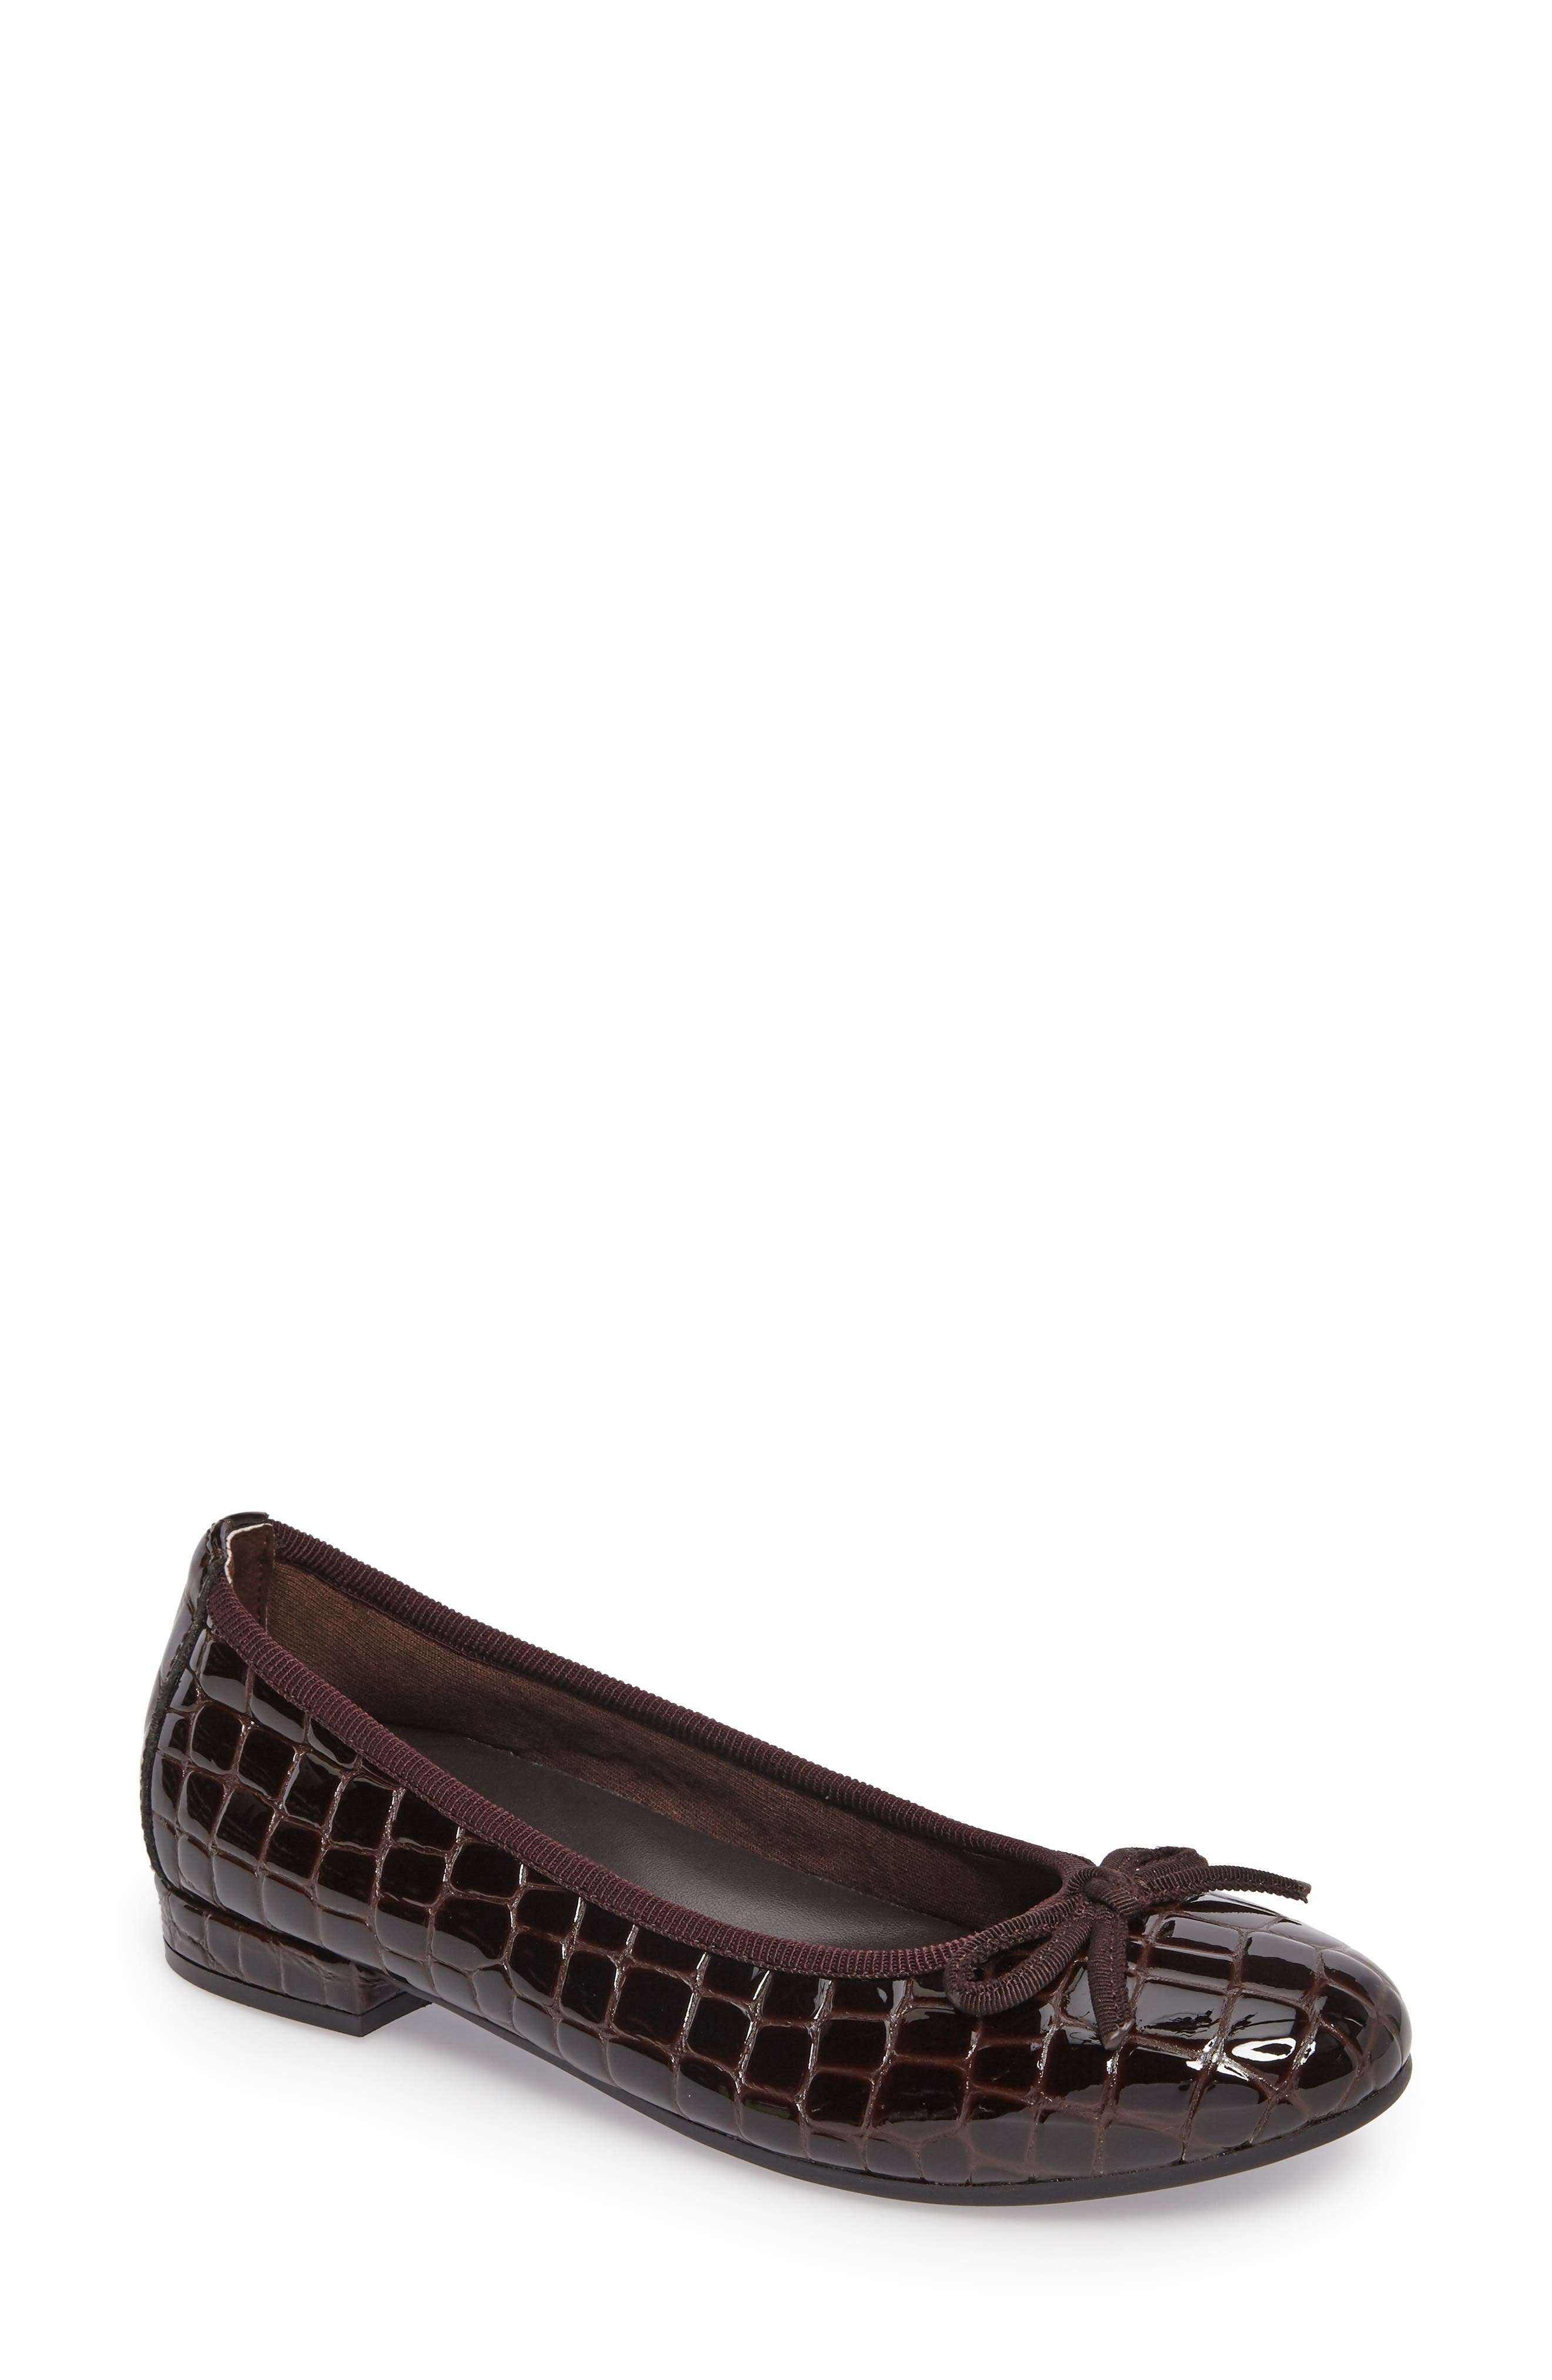 Glow Flat,                         Main,                         color, Brown Patent Leather